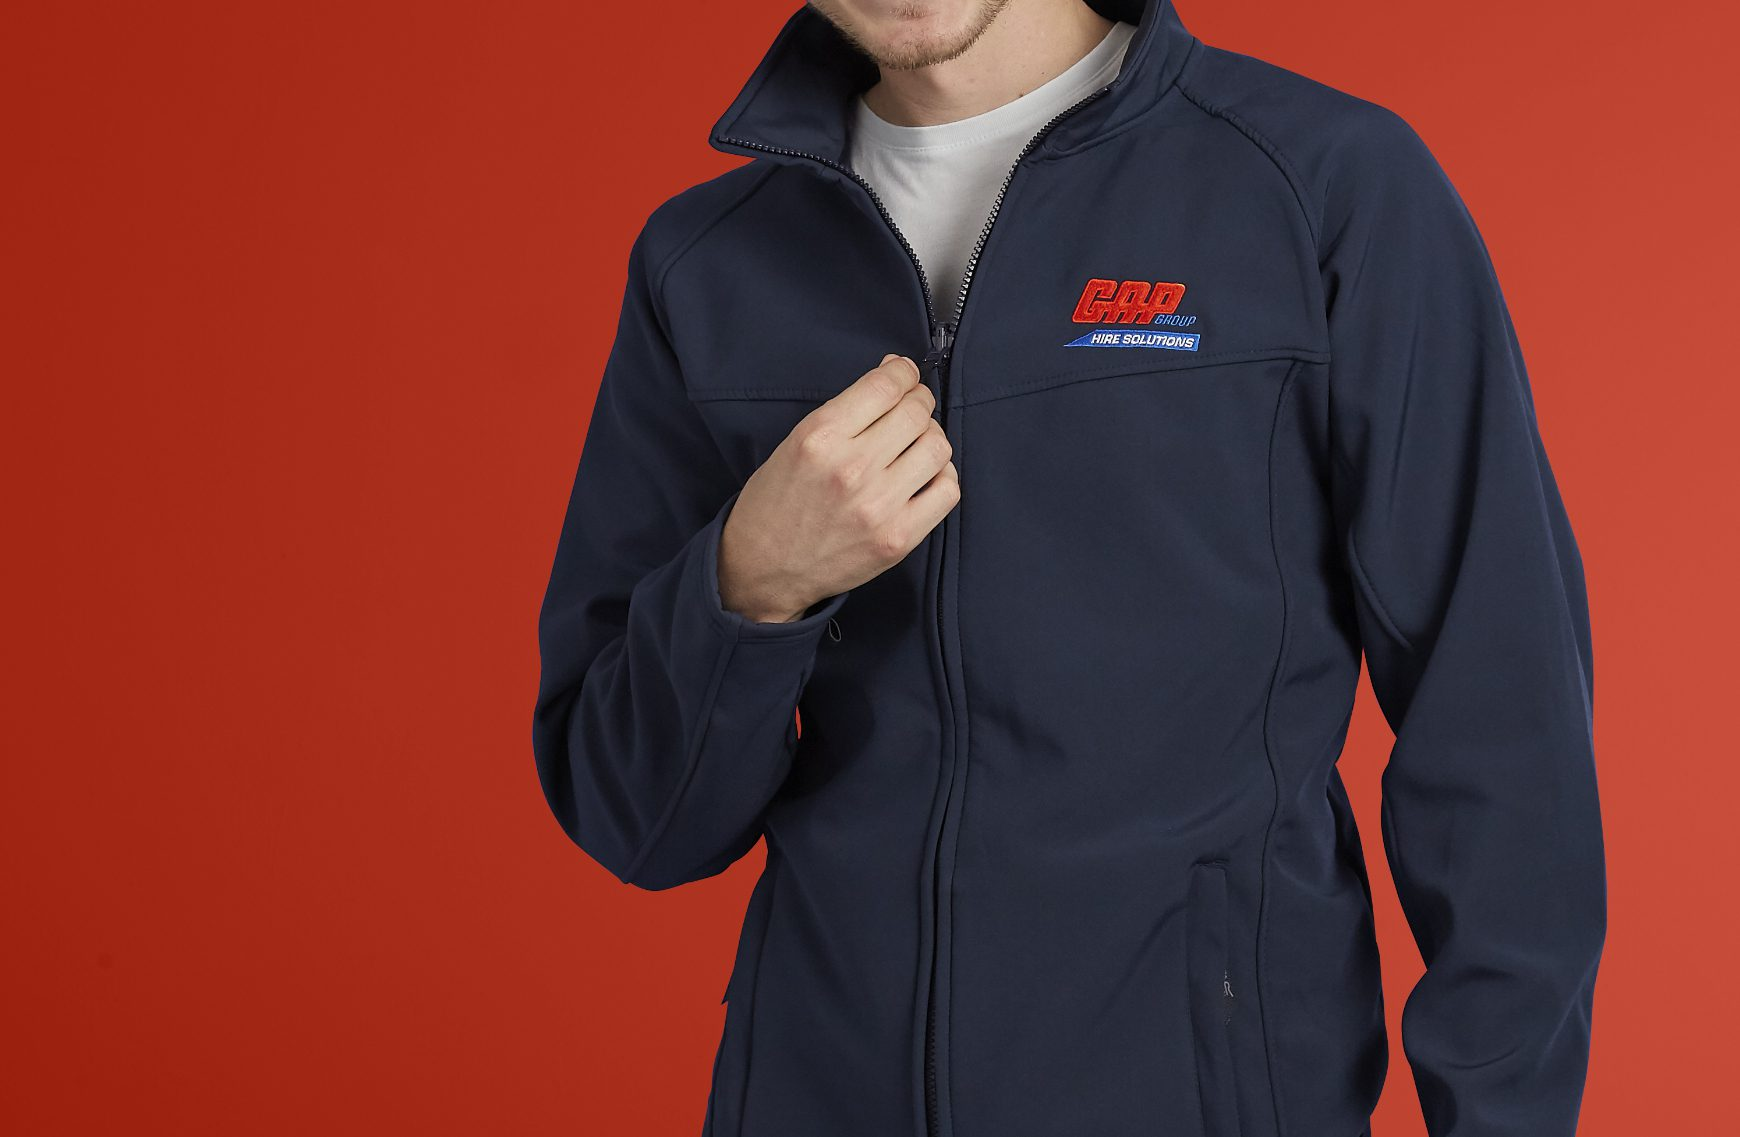 Image of man wearing company branded workwear